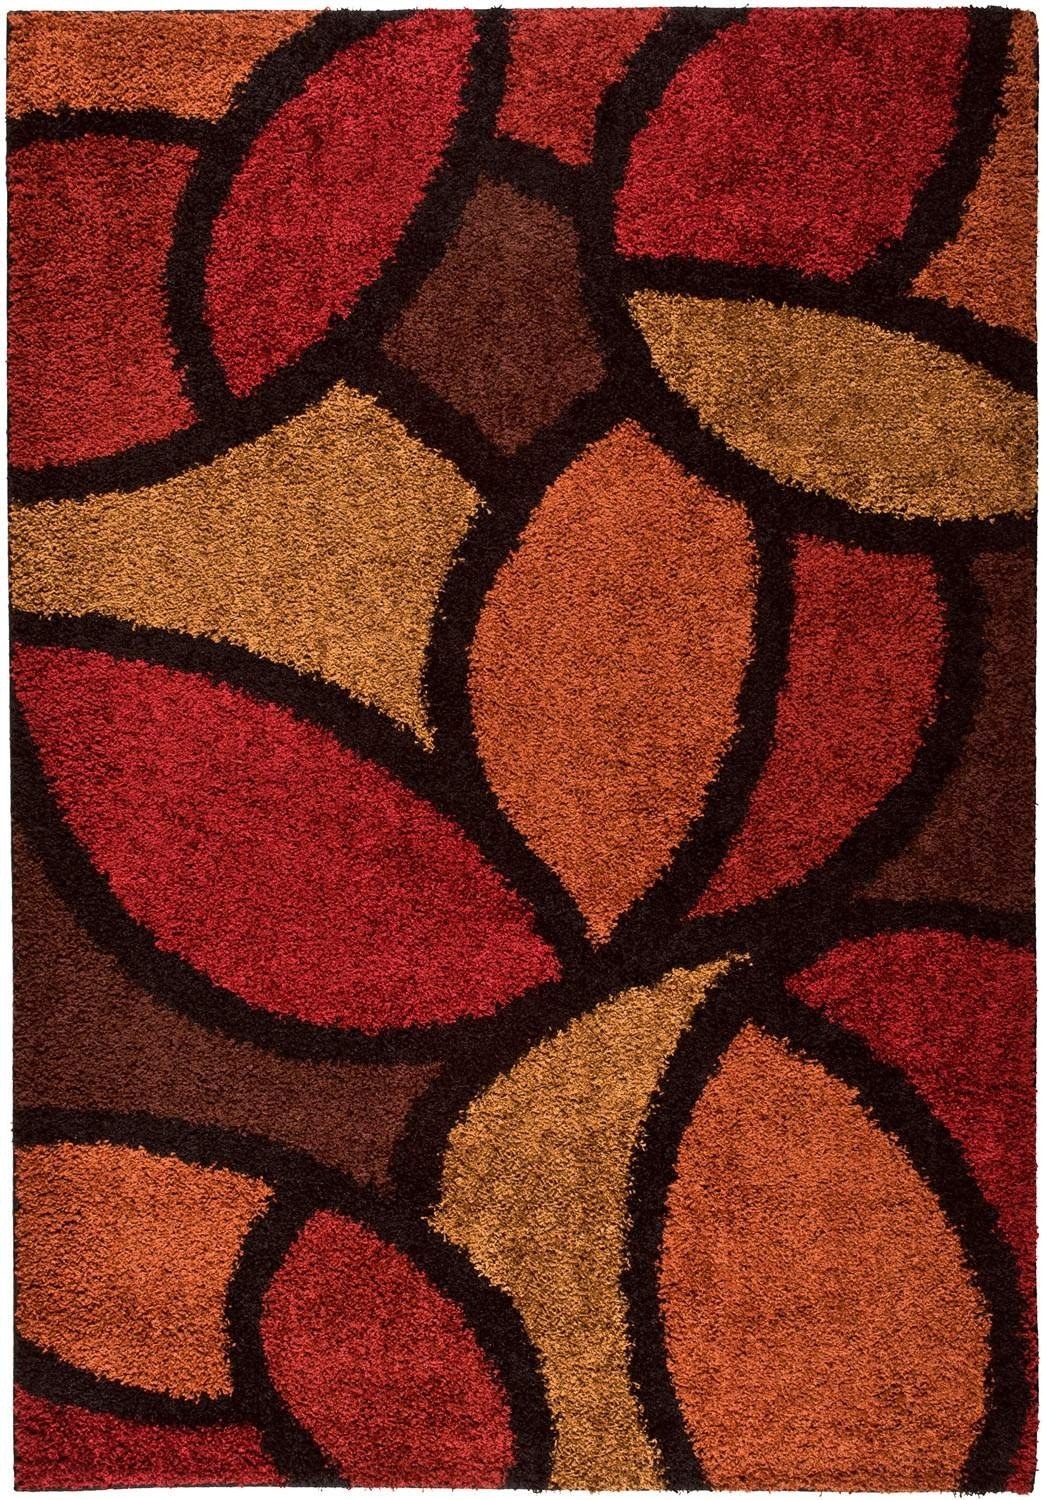 cute Orian Rugs Shag Ra La 1714 Bloompetal Red Burgundy Rug for floor decor ideas